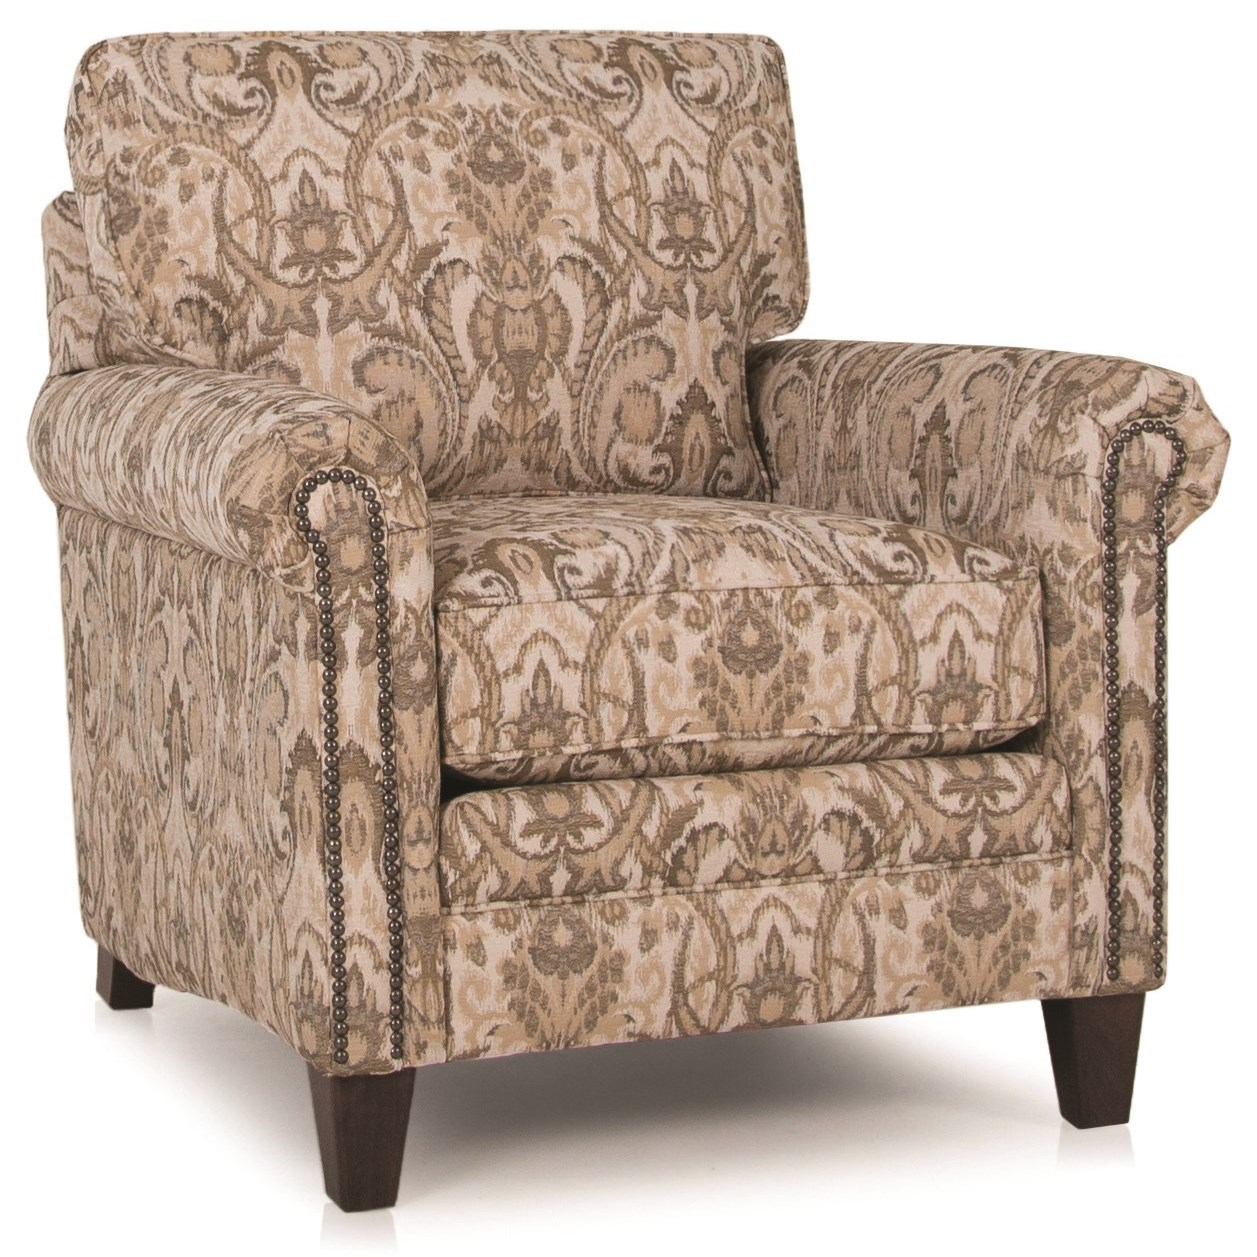 234 Chair by Smith Brothers at Rooms for Less